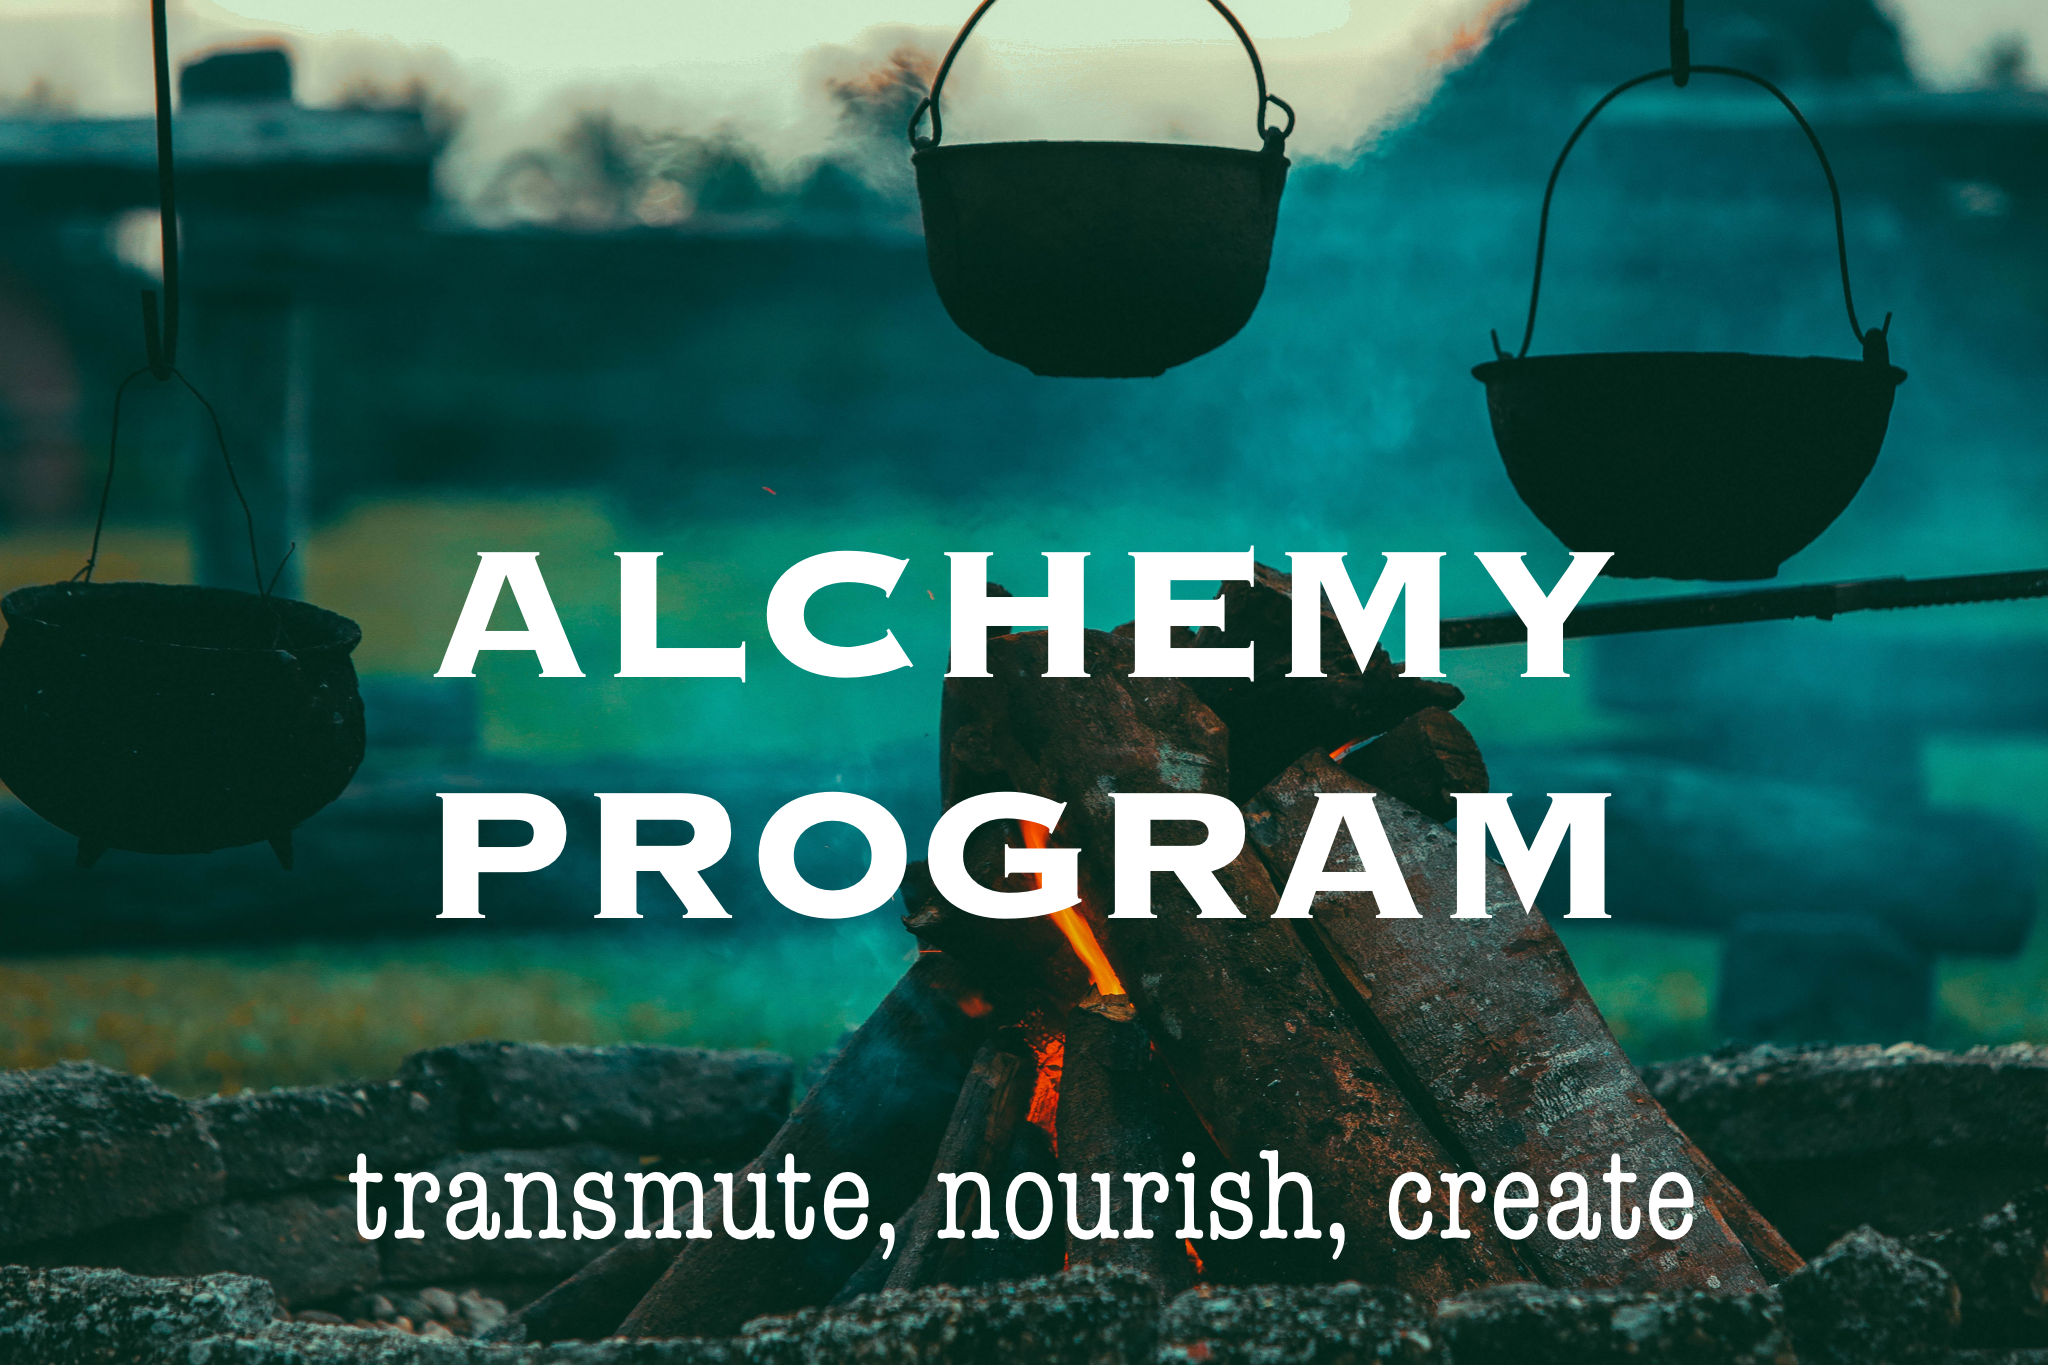 Alchemy Program